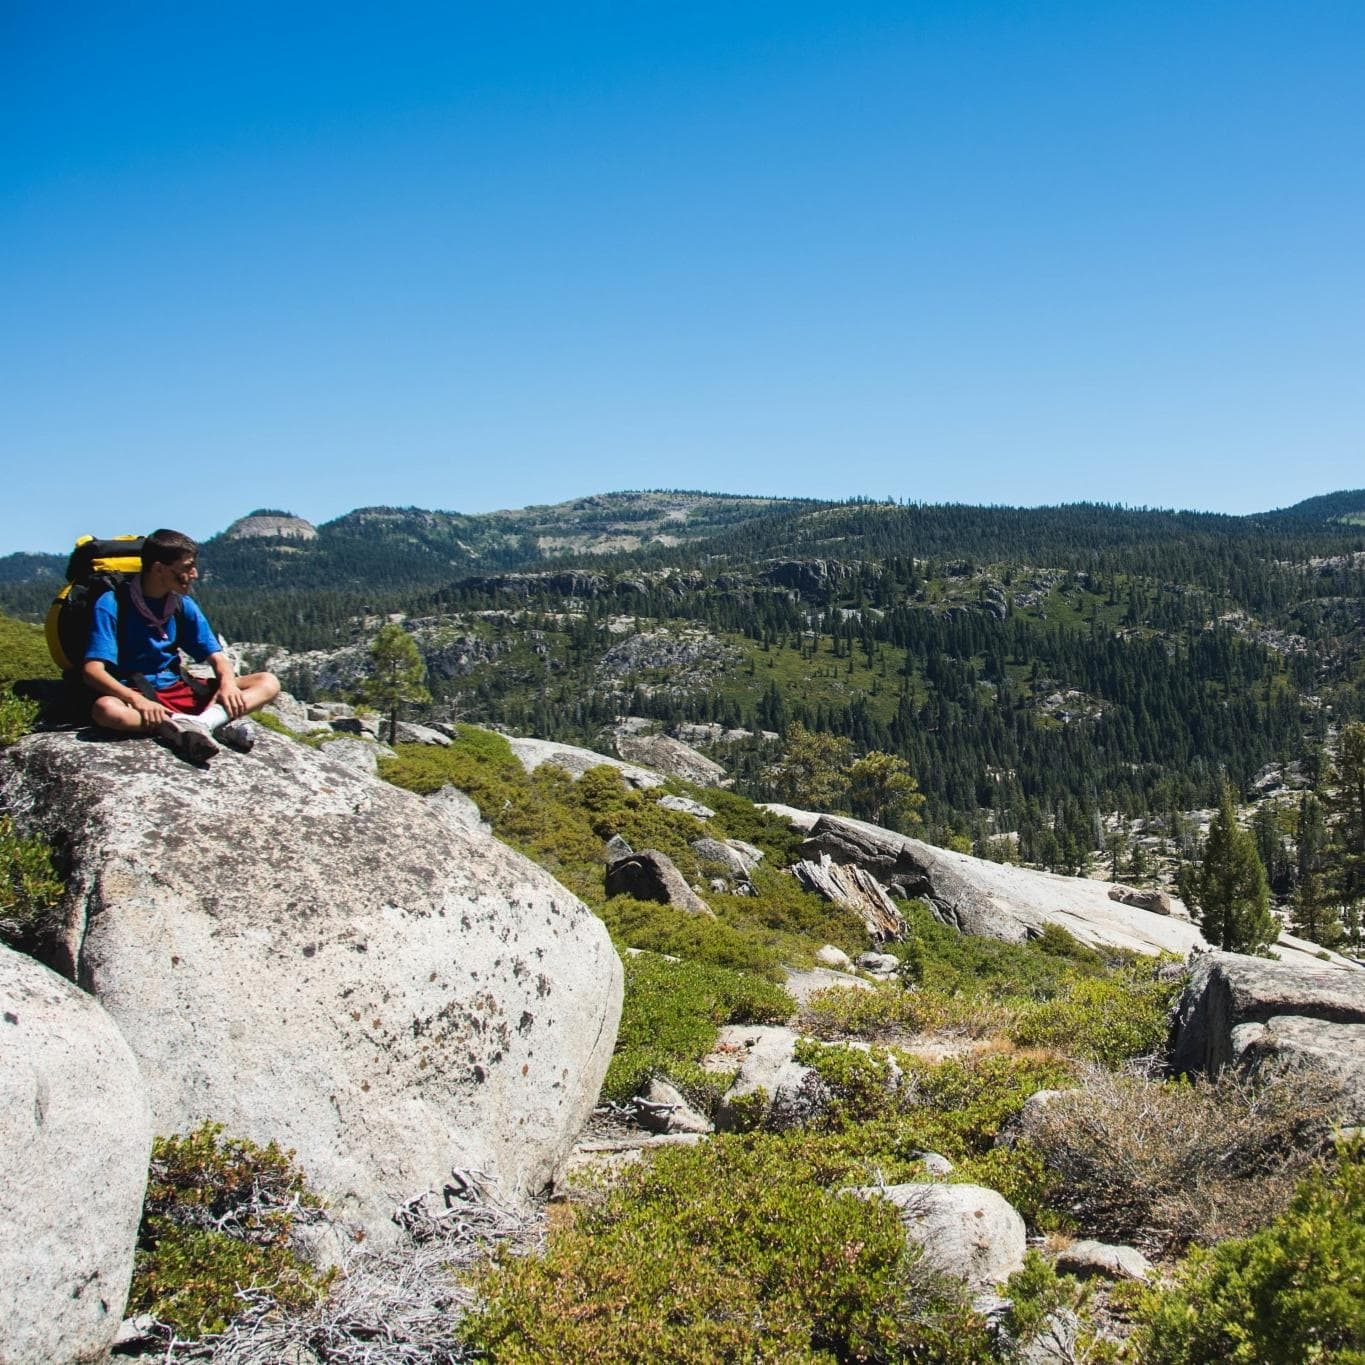 Backpacker sits on boulder overlooking wilderness valley